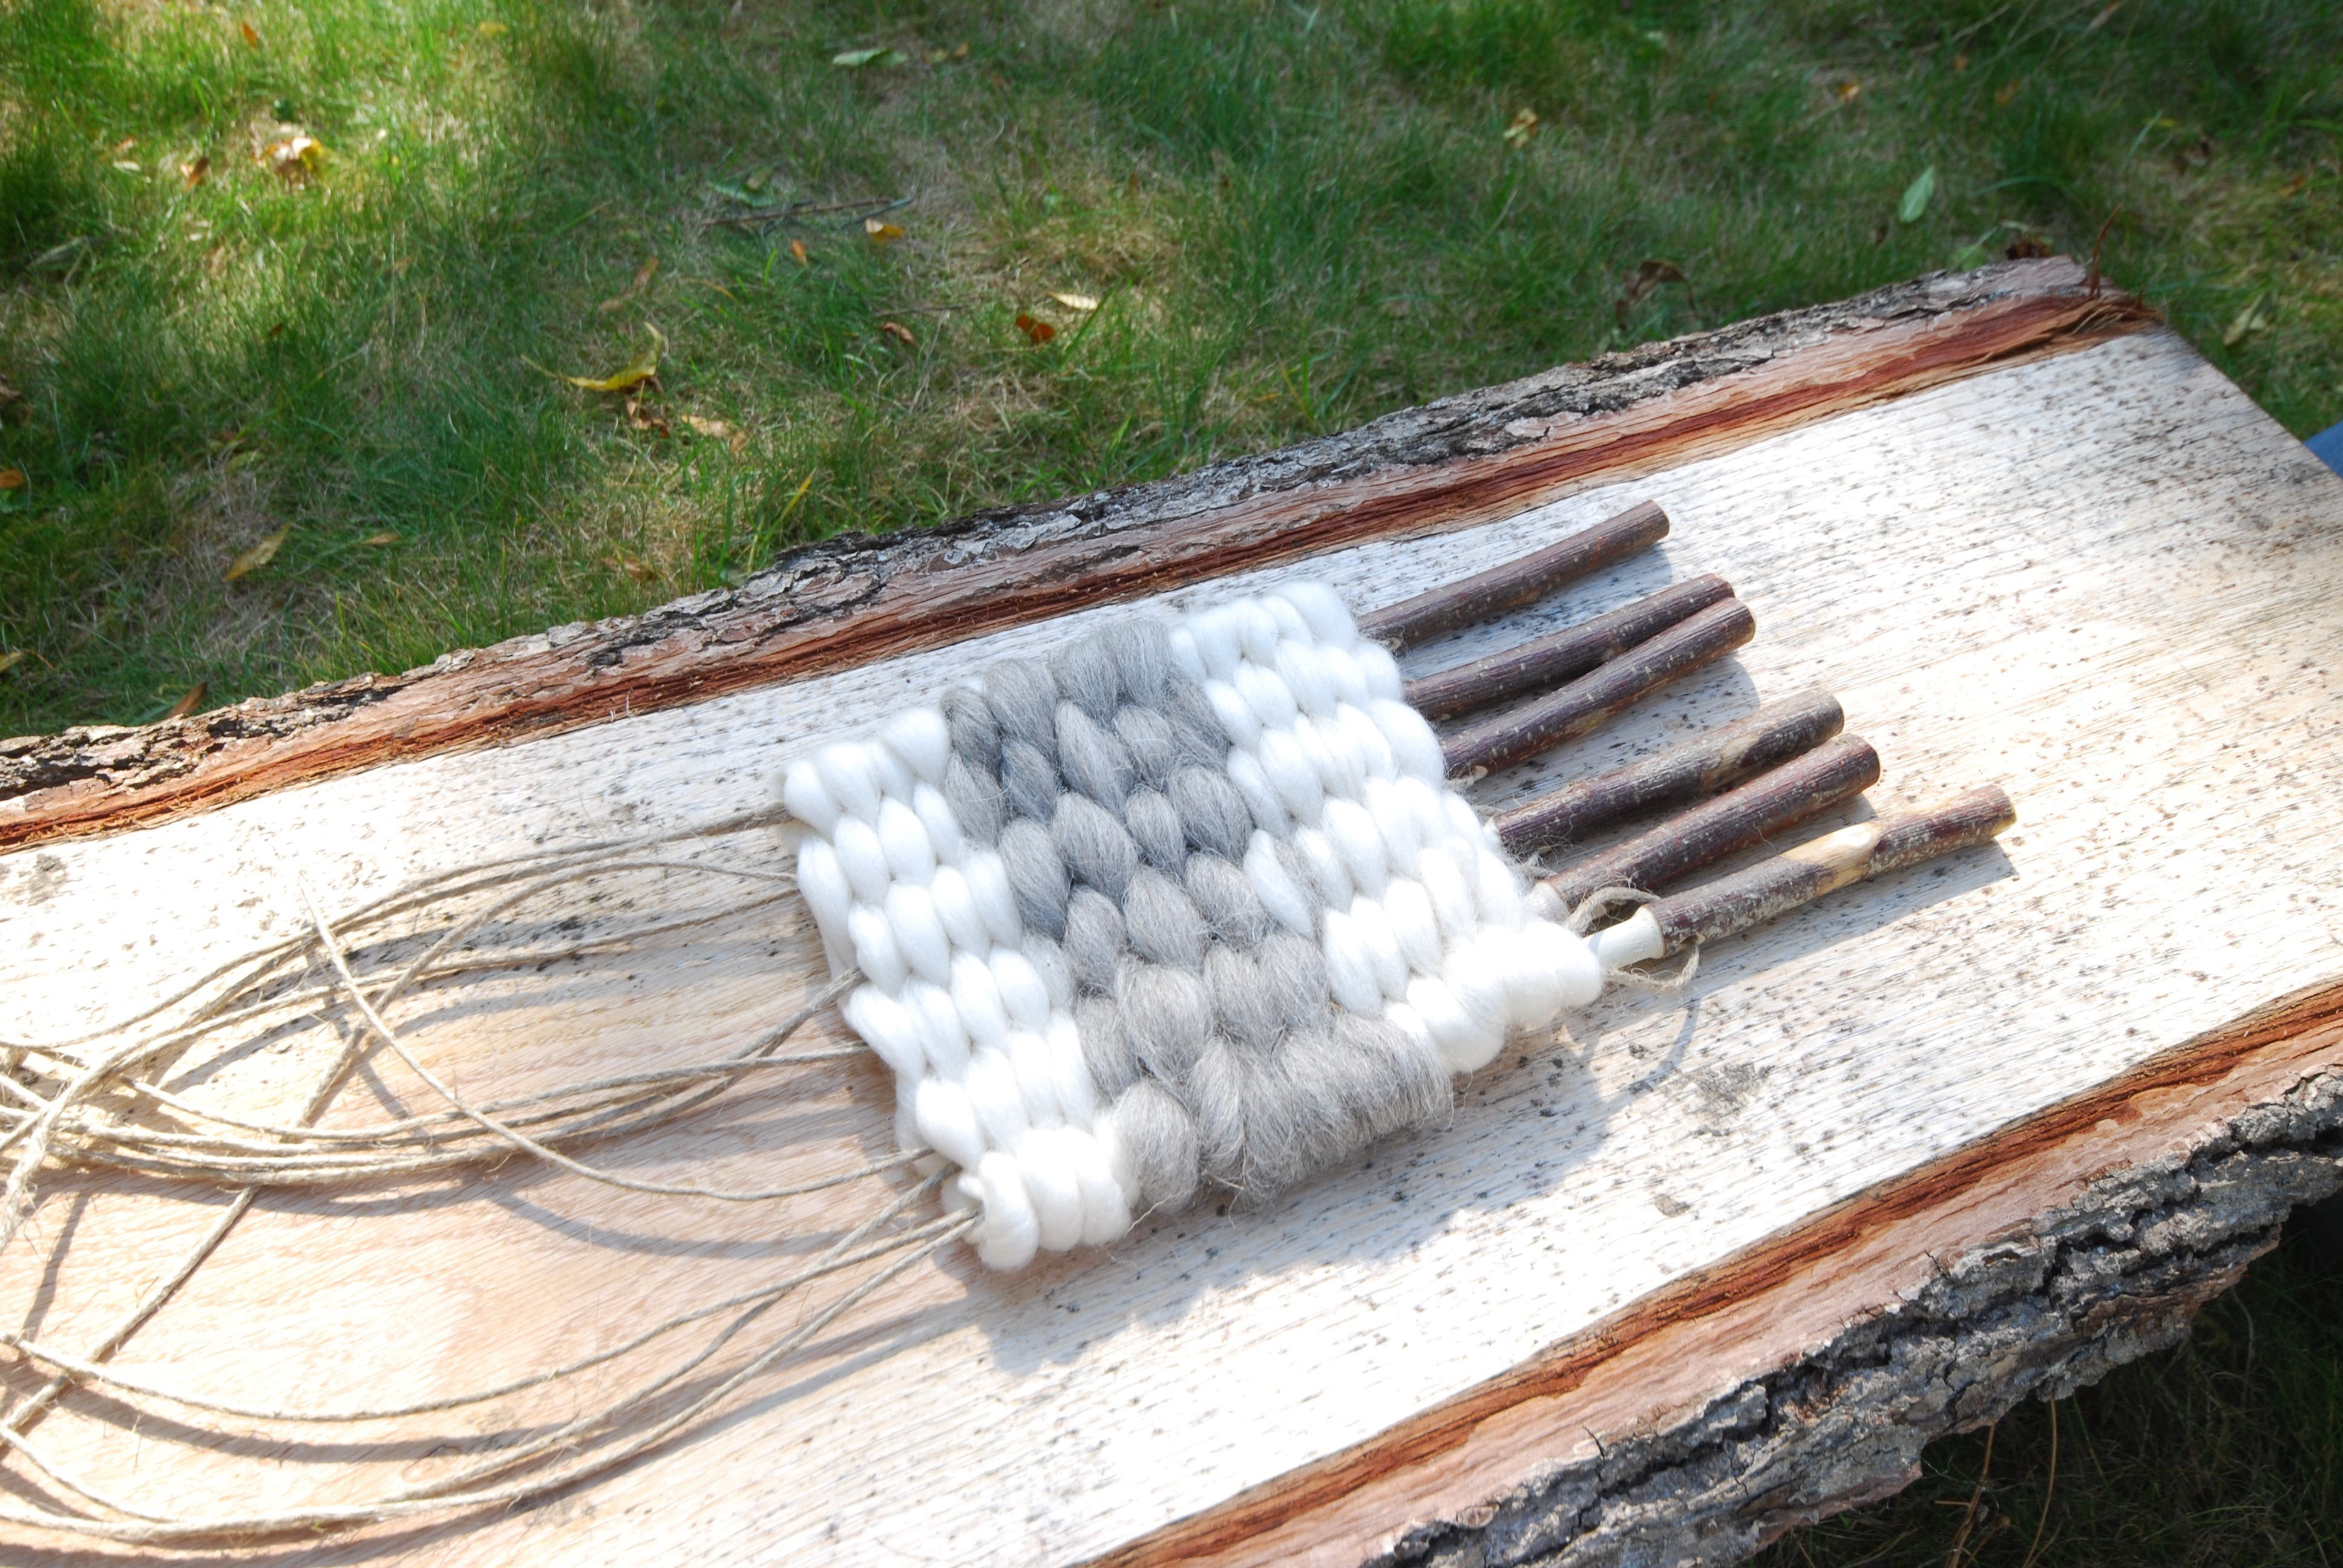 woven wool fibres laid on a wooden board